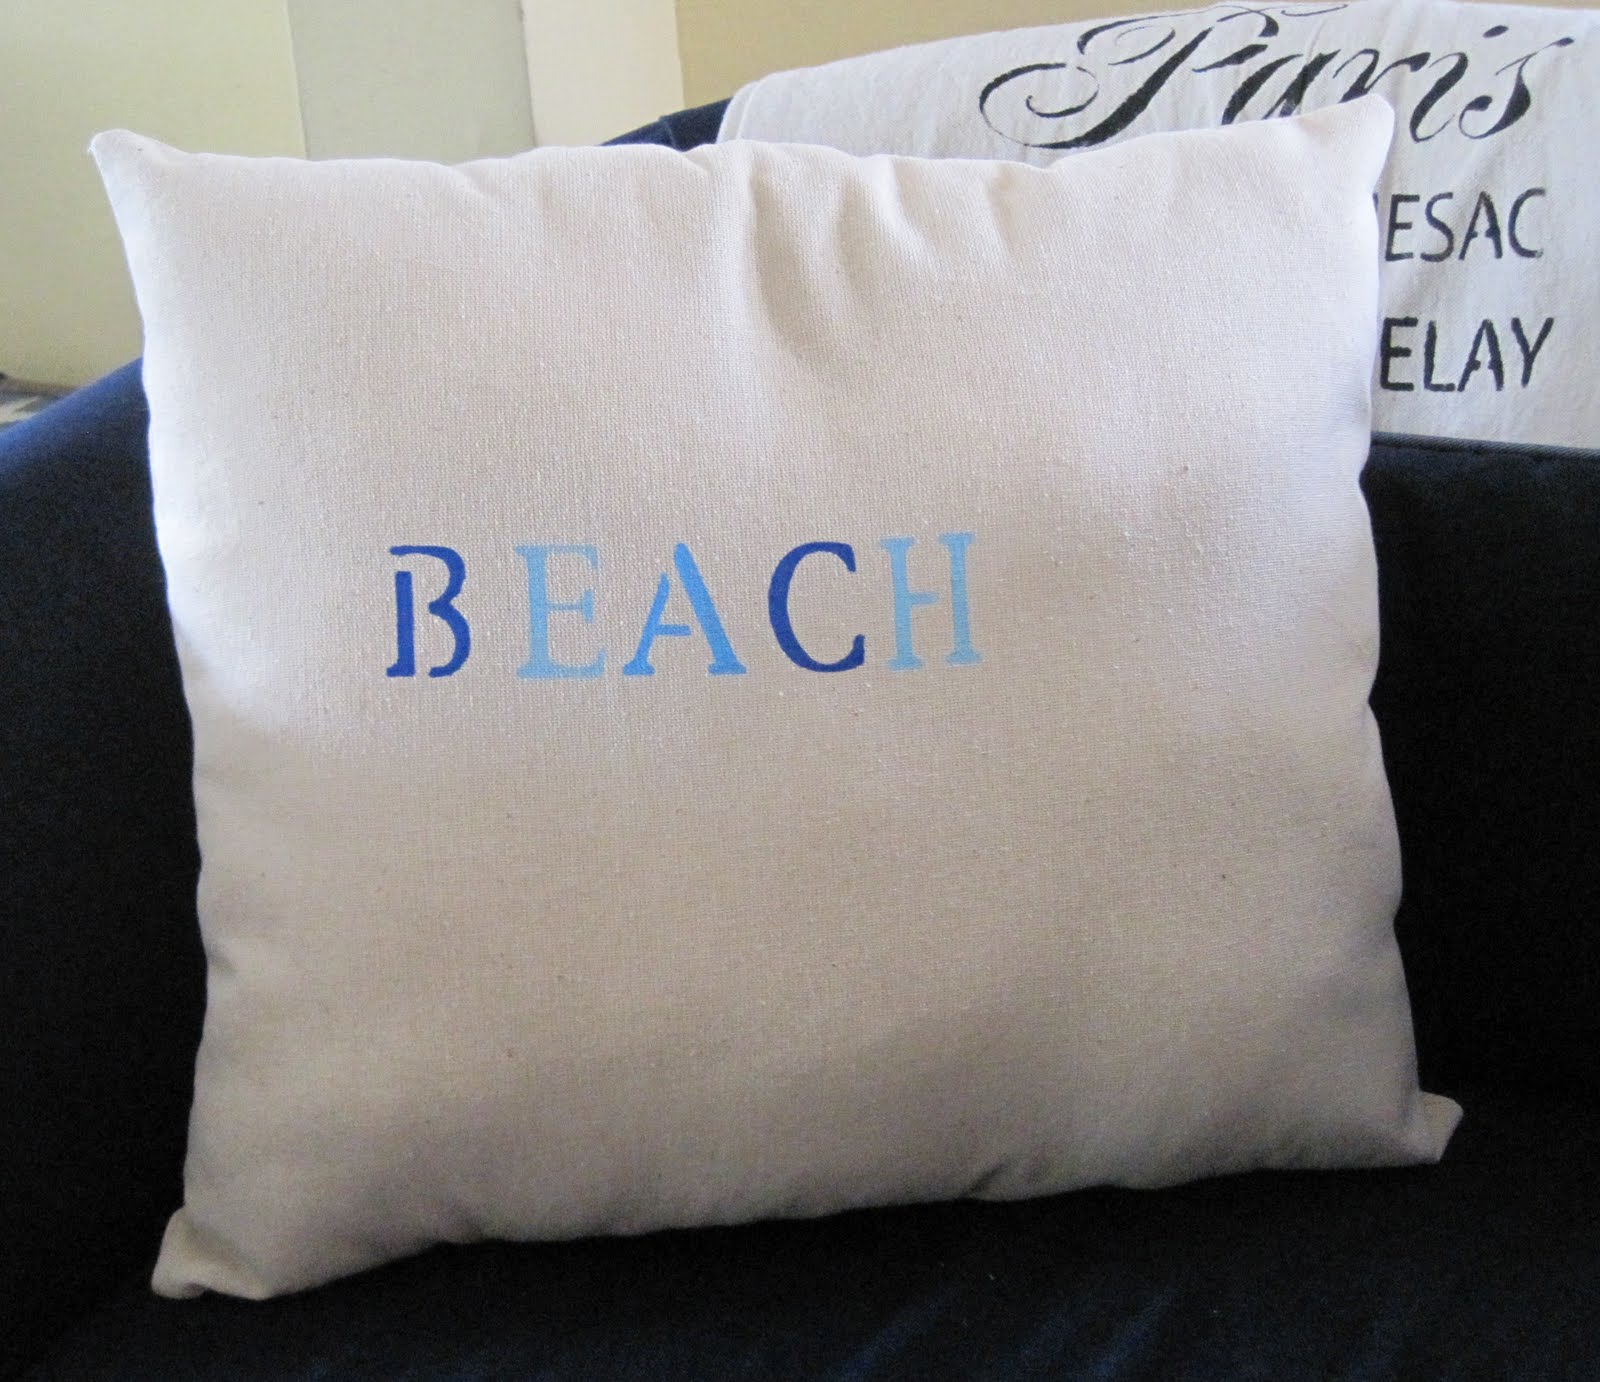 sunbrella il dolphin fullxfull au cover pillow zoom embroidered beach x pillows listing